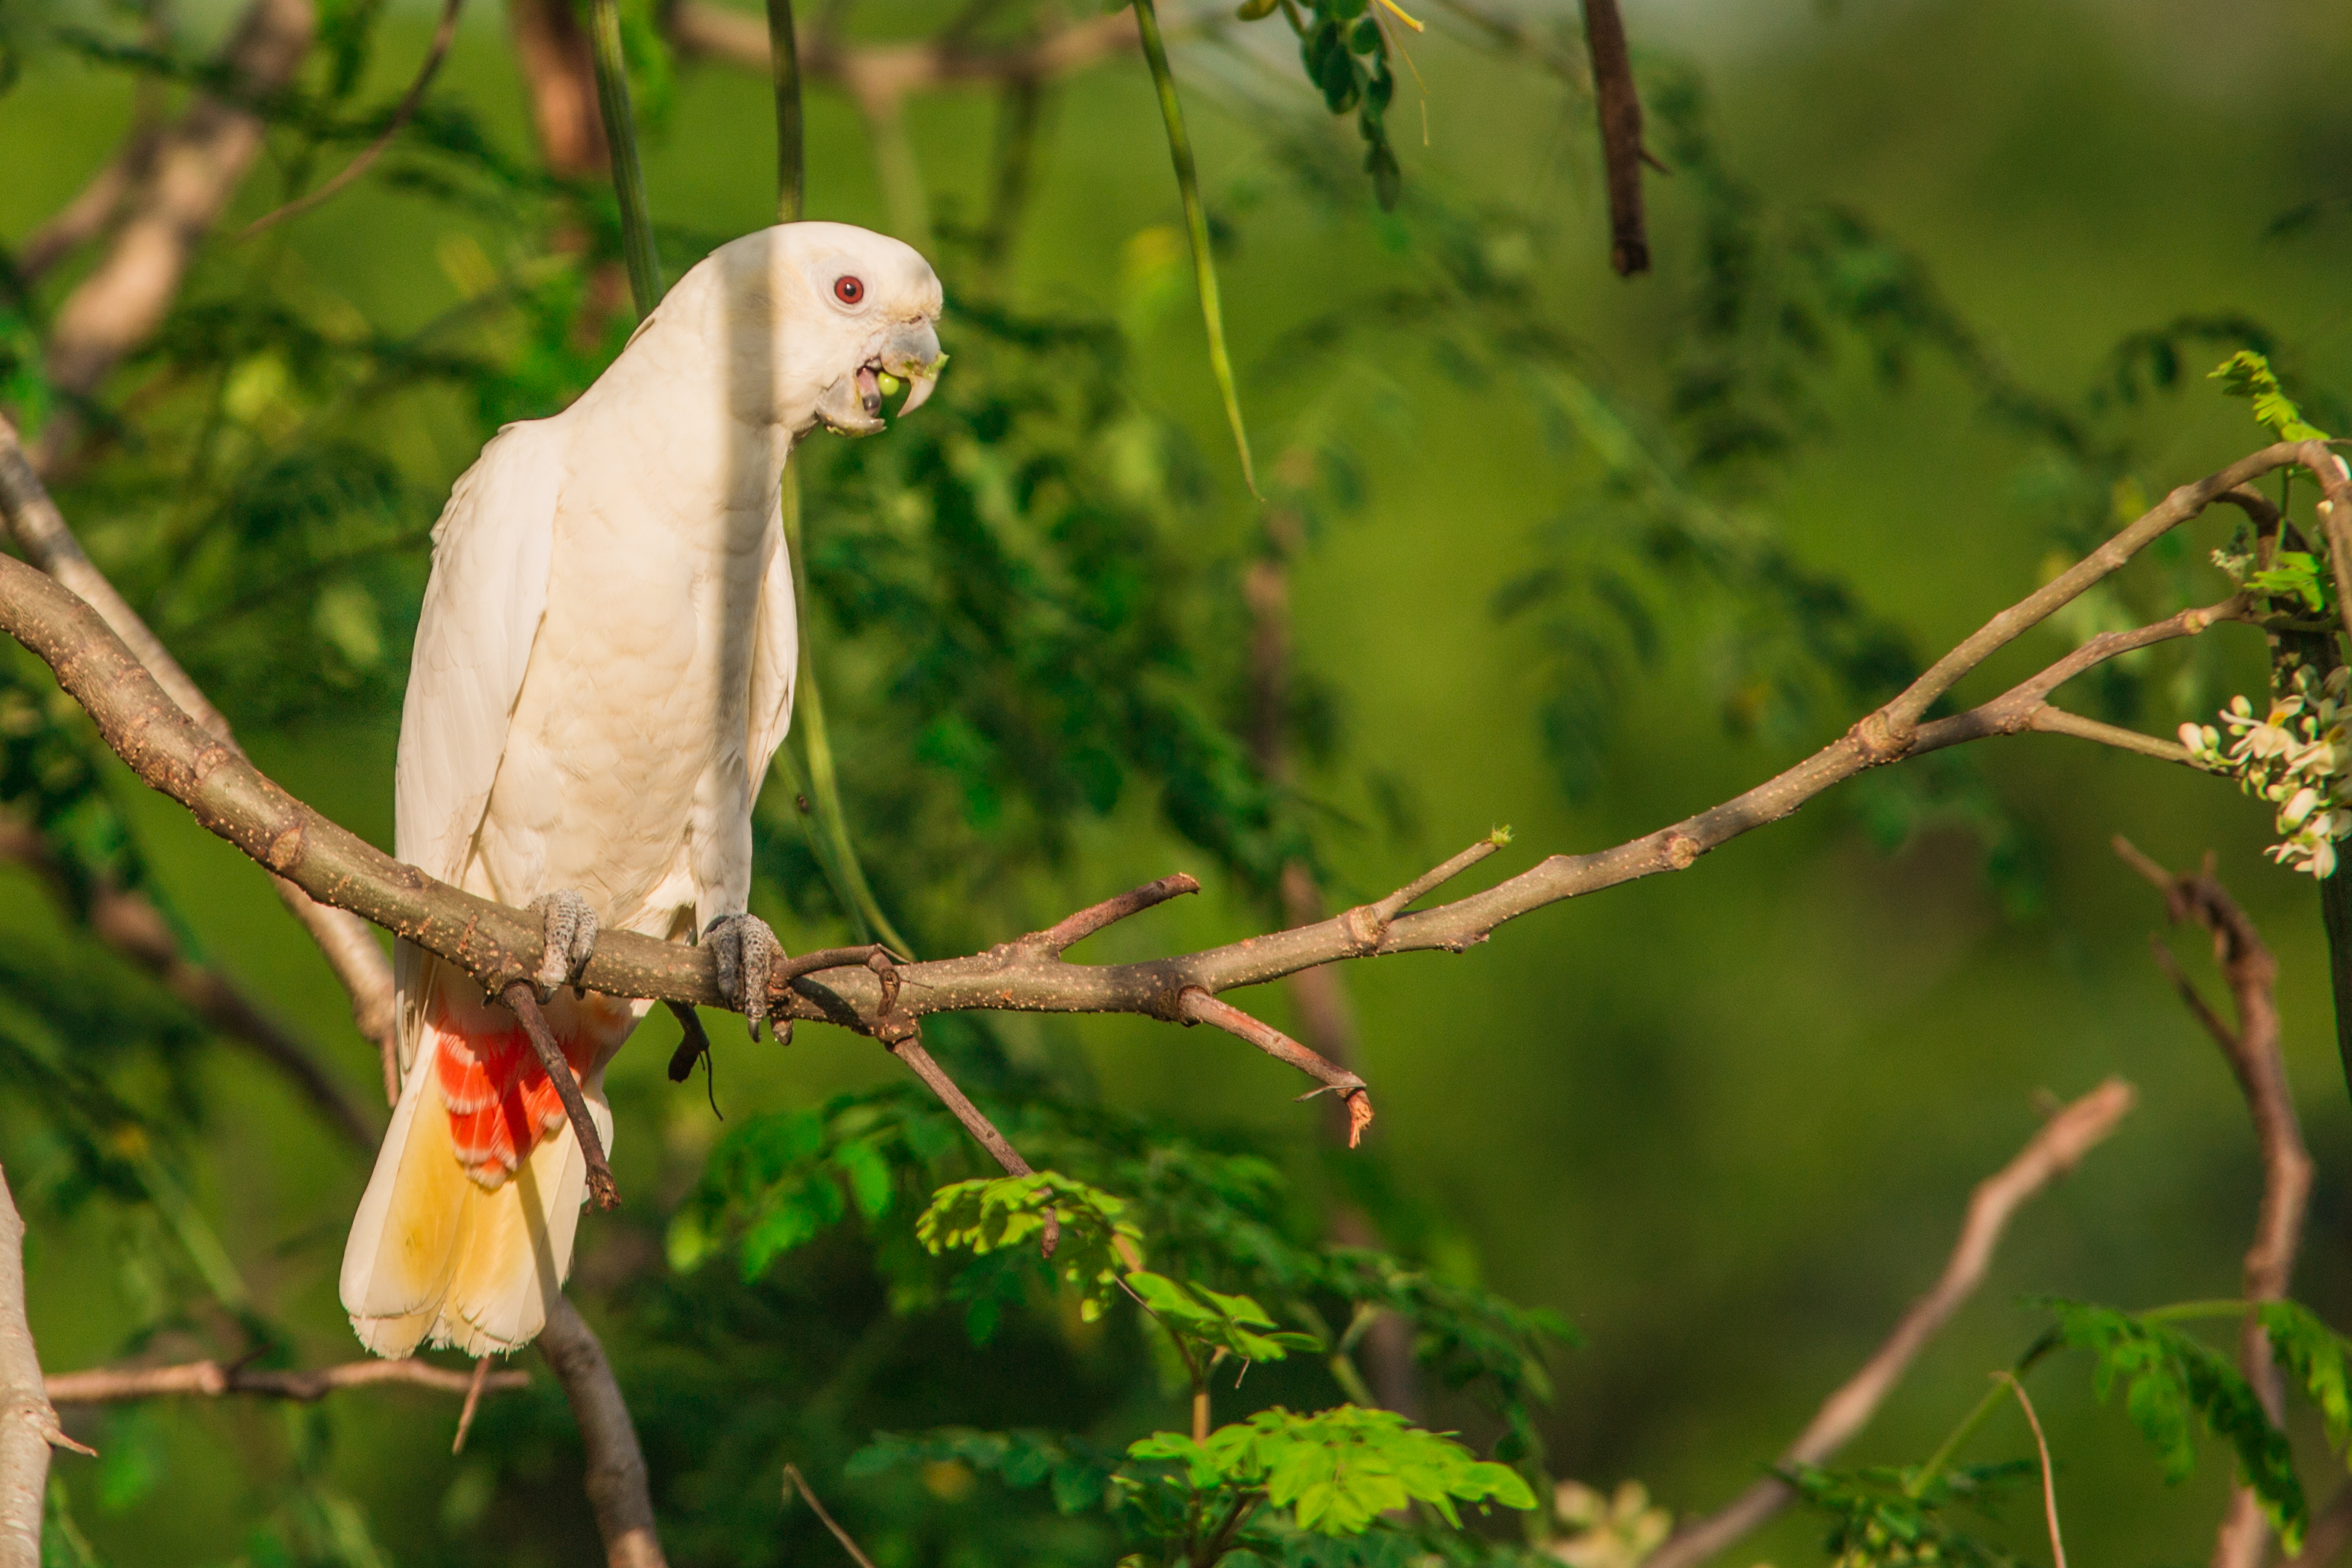 Philippine Cockatoo. Photo by Willem Van de Ven.